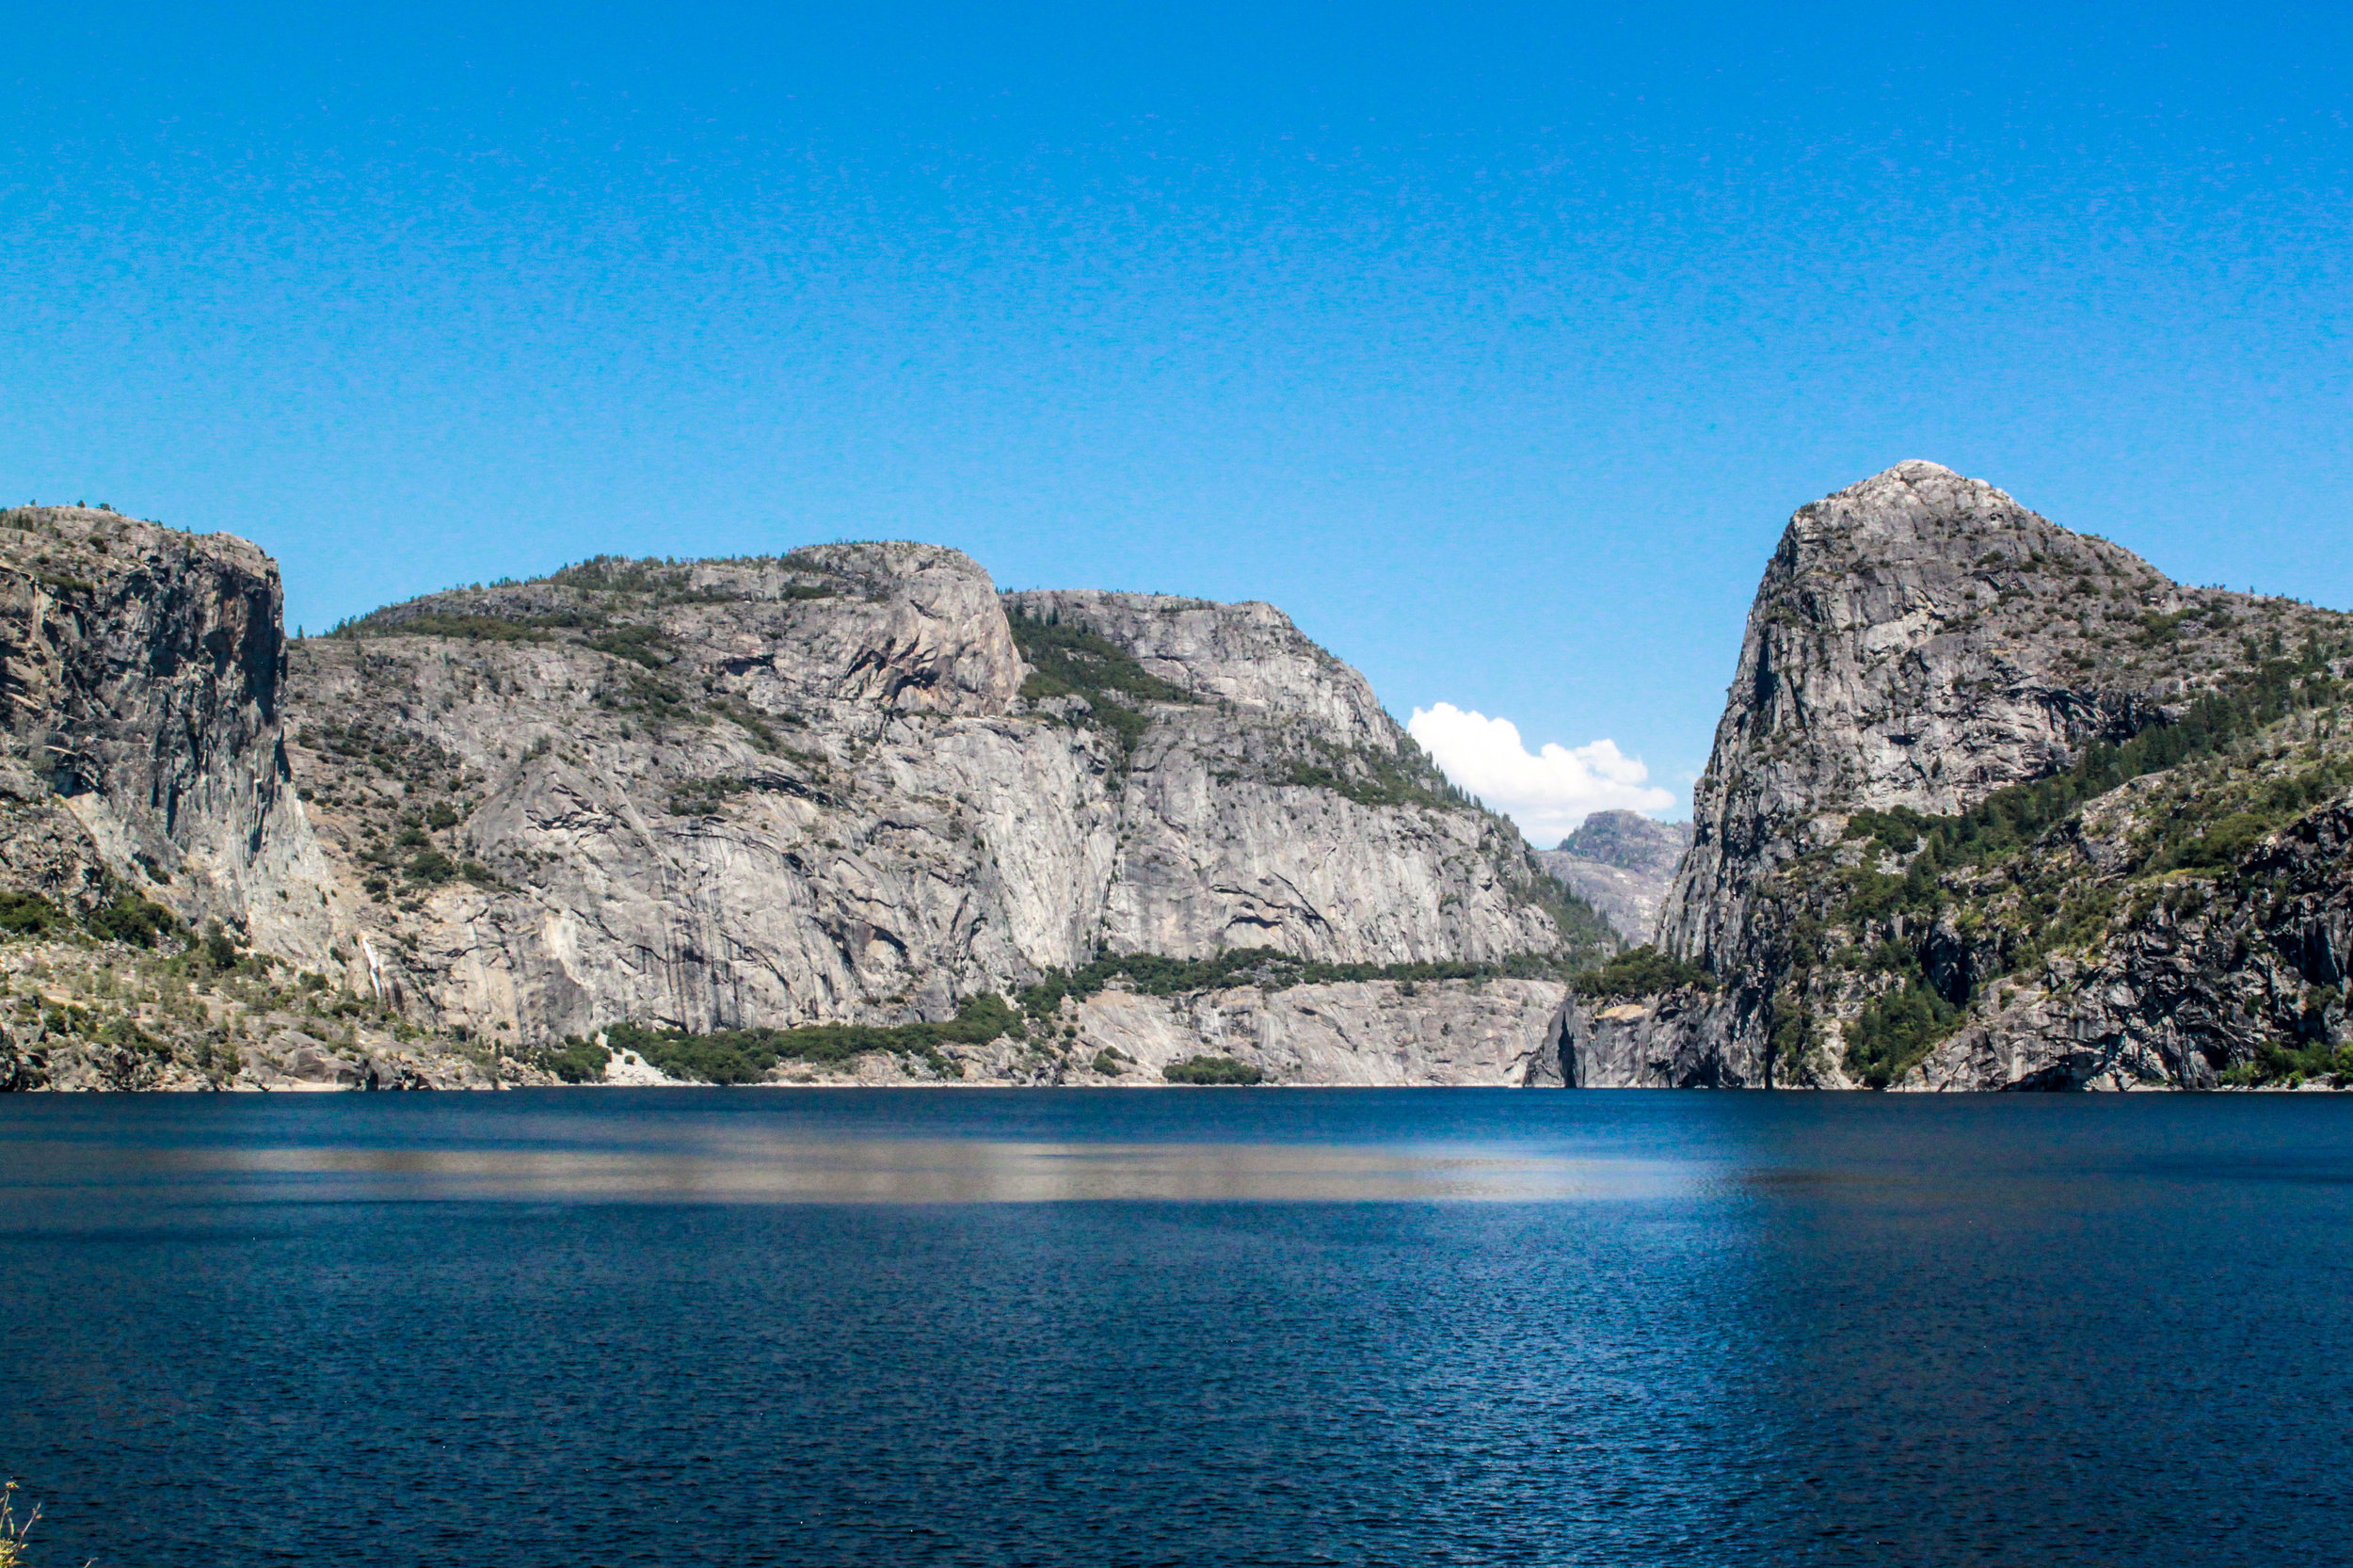 Hetch Hetchy Reserve from the O'Shaughnessy Dam, 2012